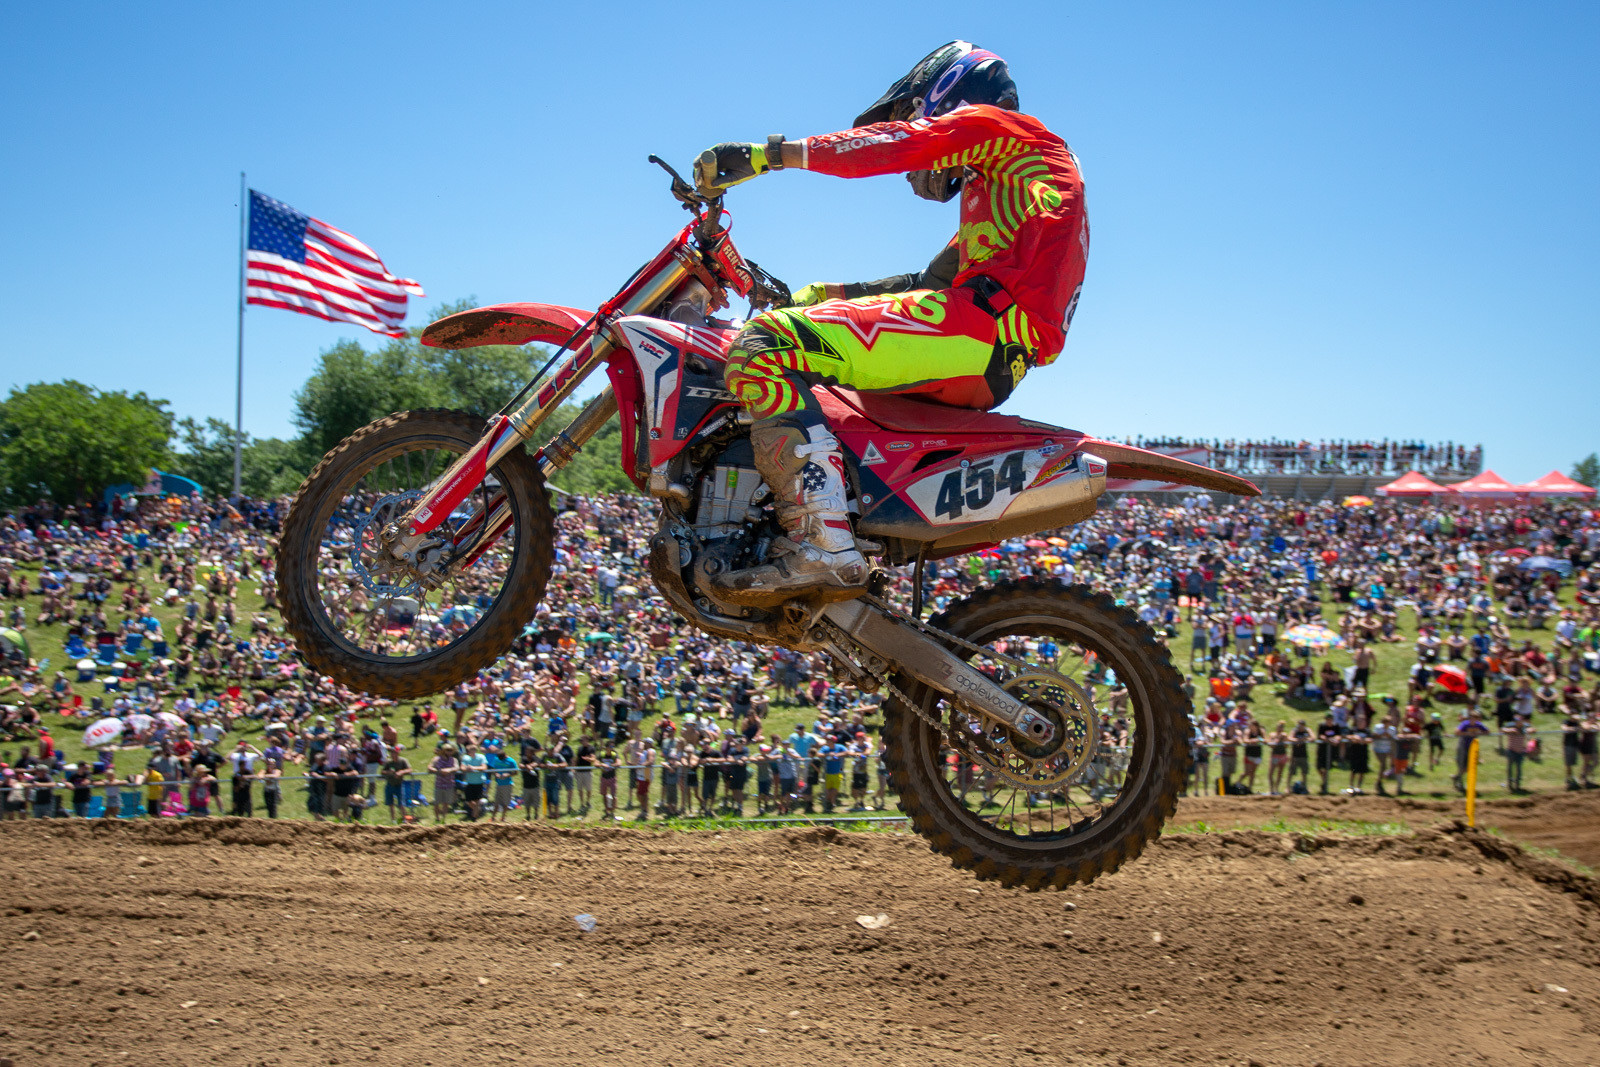 Kudos to British visitor, Jake Nicholls, whose 9-13 was good for tenth overall.